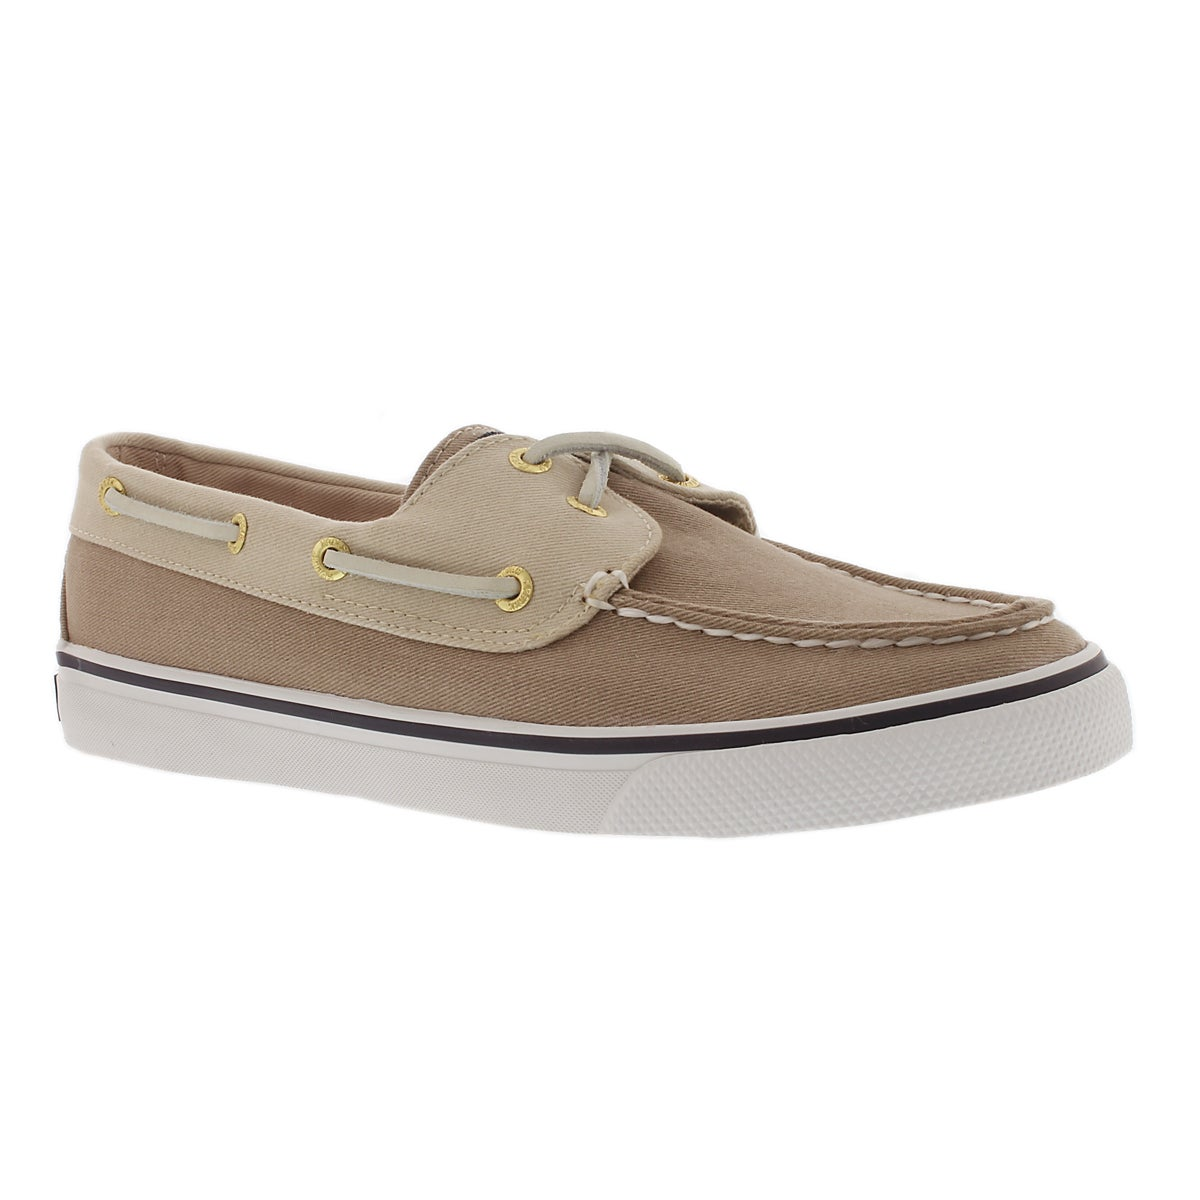 Lds Bahama 2-eye stone canvas boat shoe